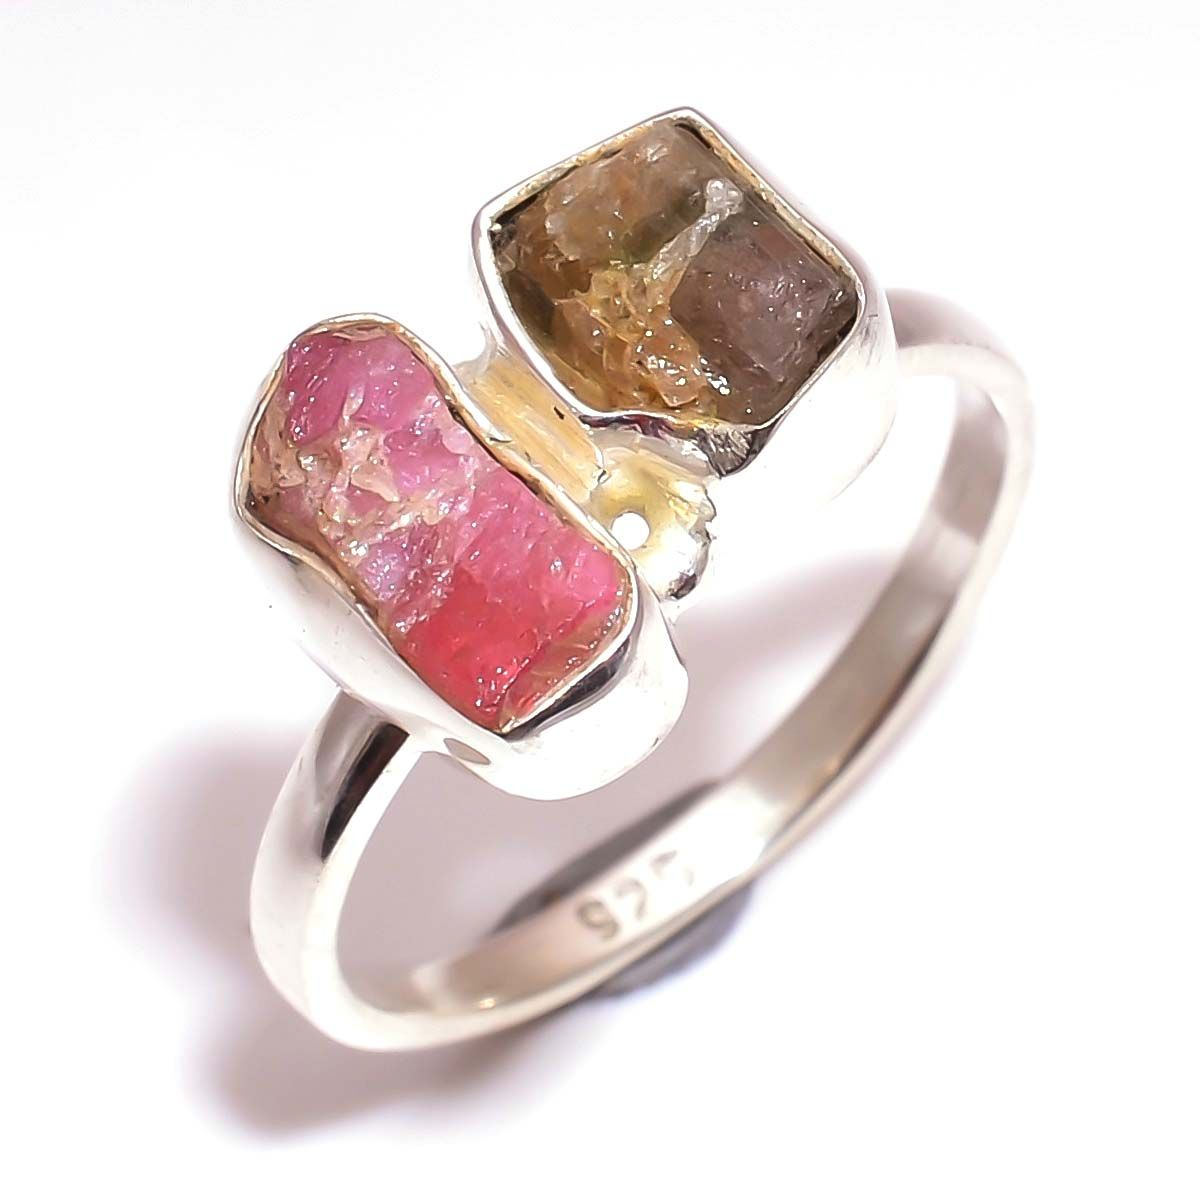 Multi Tourmaline Raw Gemstone 925 Sterling Silver Ring Size 8